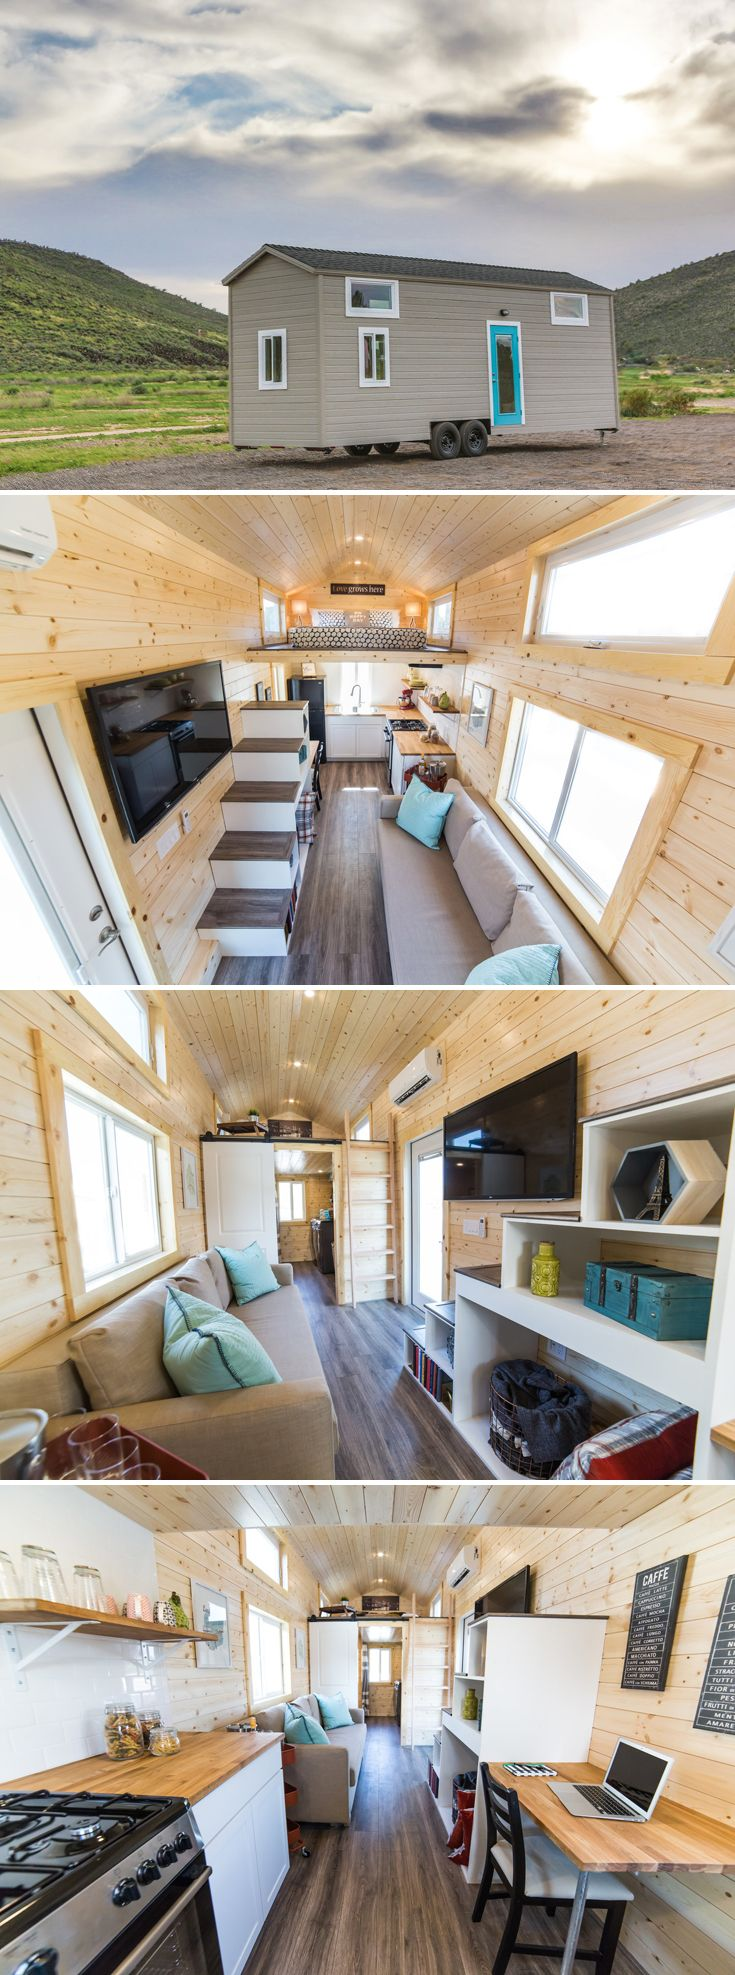 This 350-square-foot tiny house has a large kitchen with plentiful counter space, a four burner freestanding range, and an apartment size refrigerator.